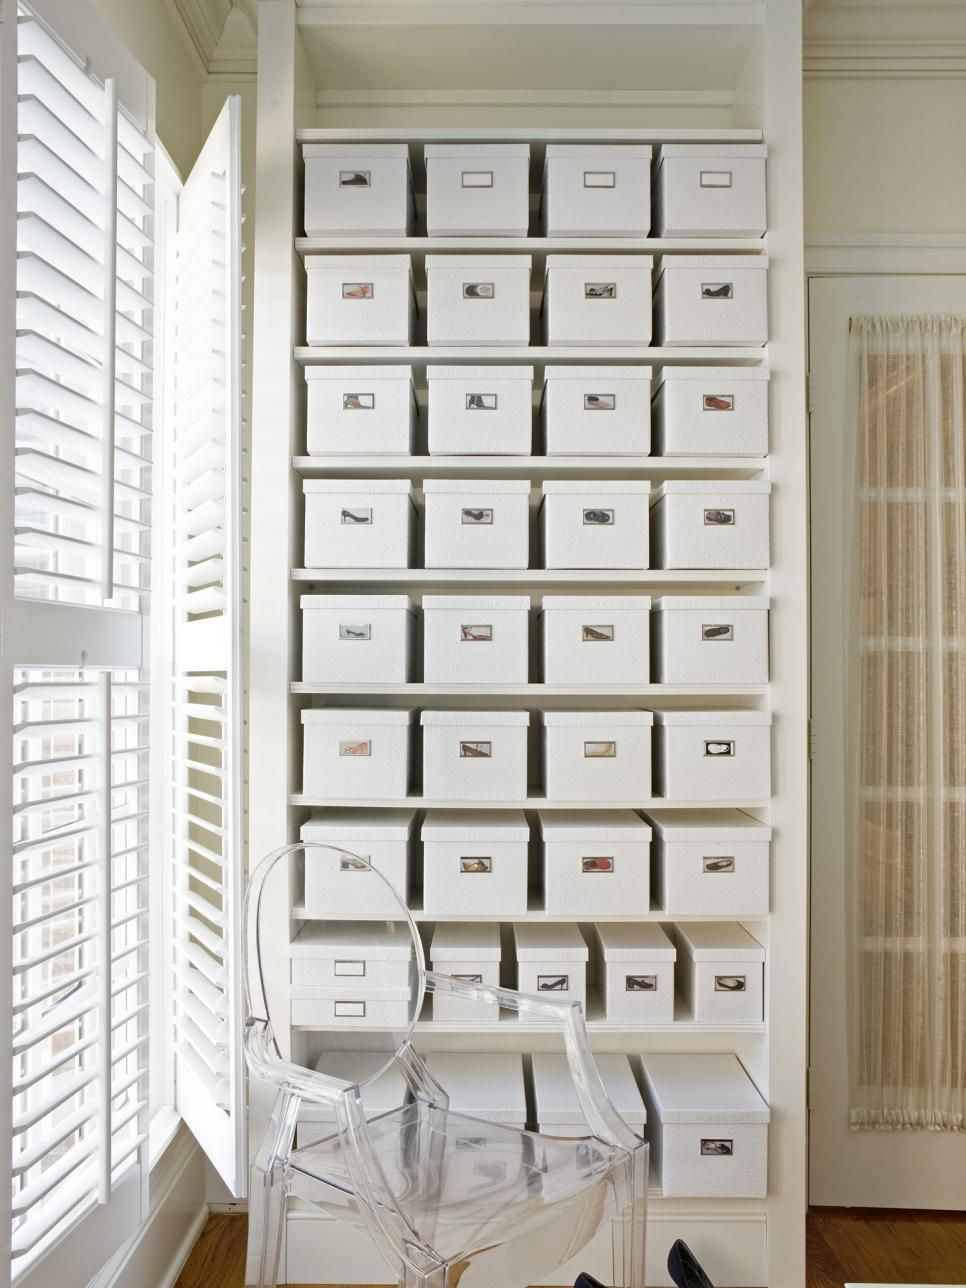 25 Beautifully Organized and Functional Spaces | Pinterest | Hgtv ...